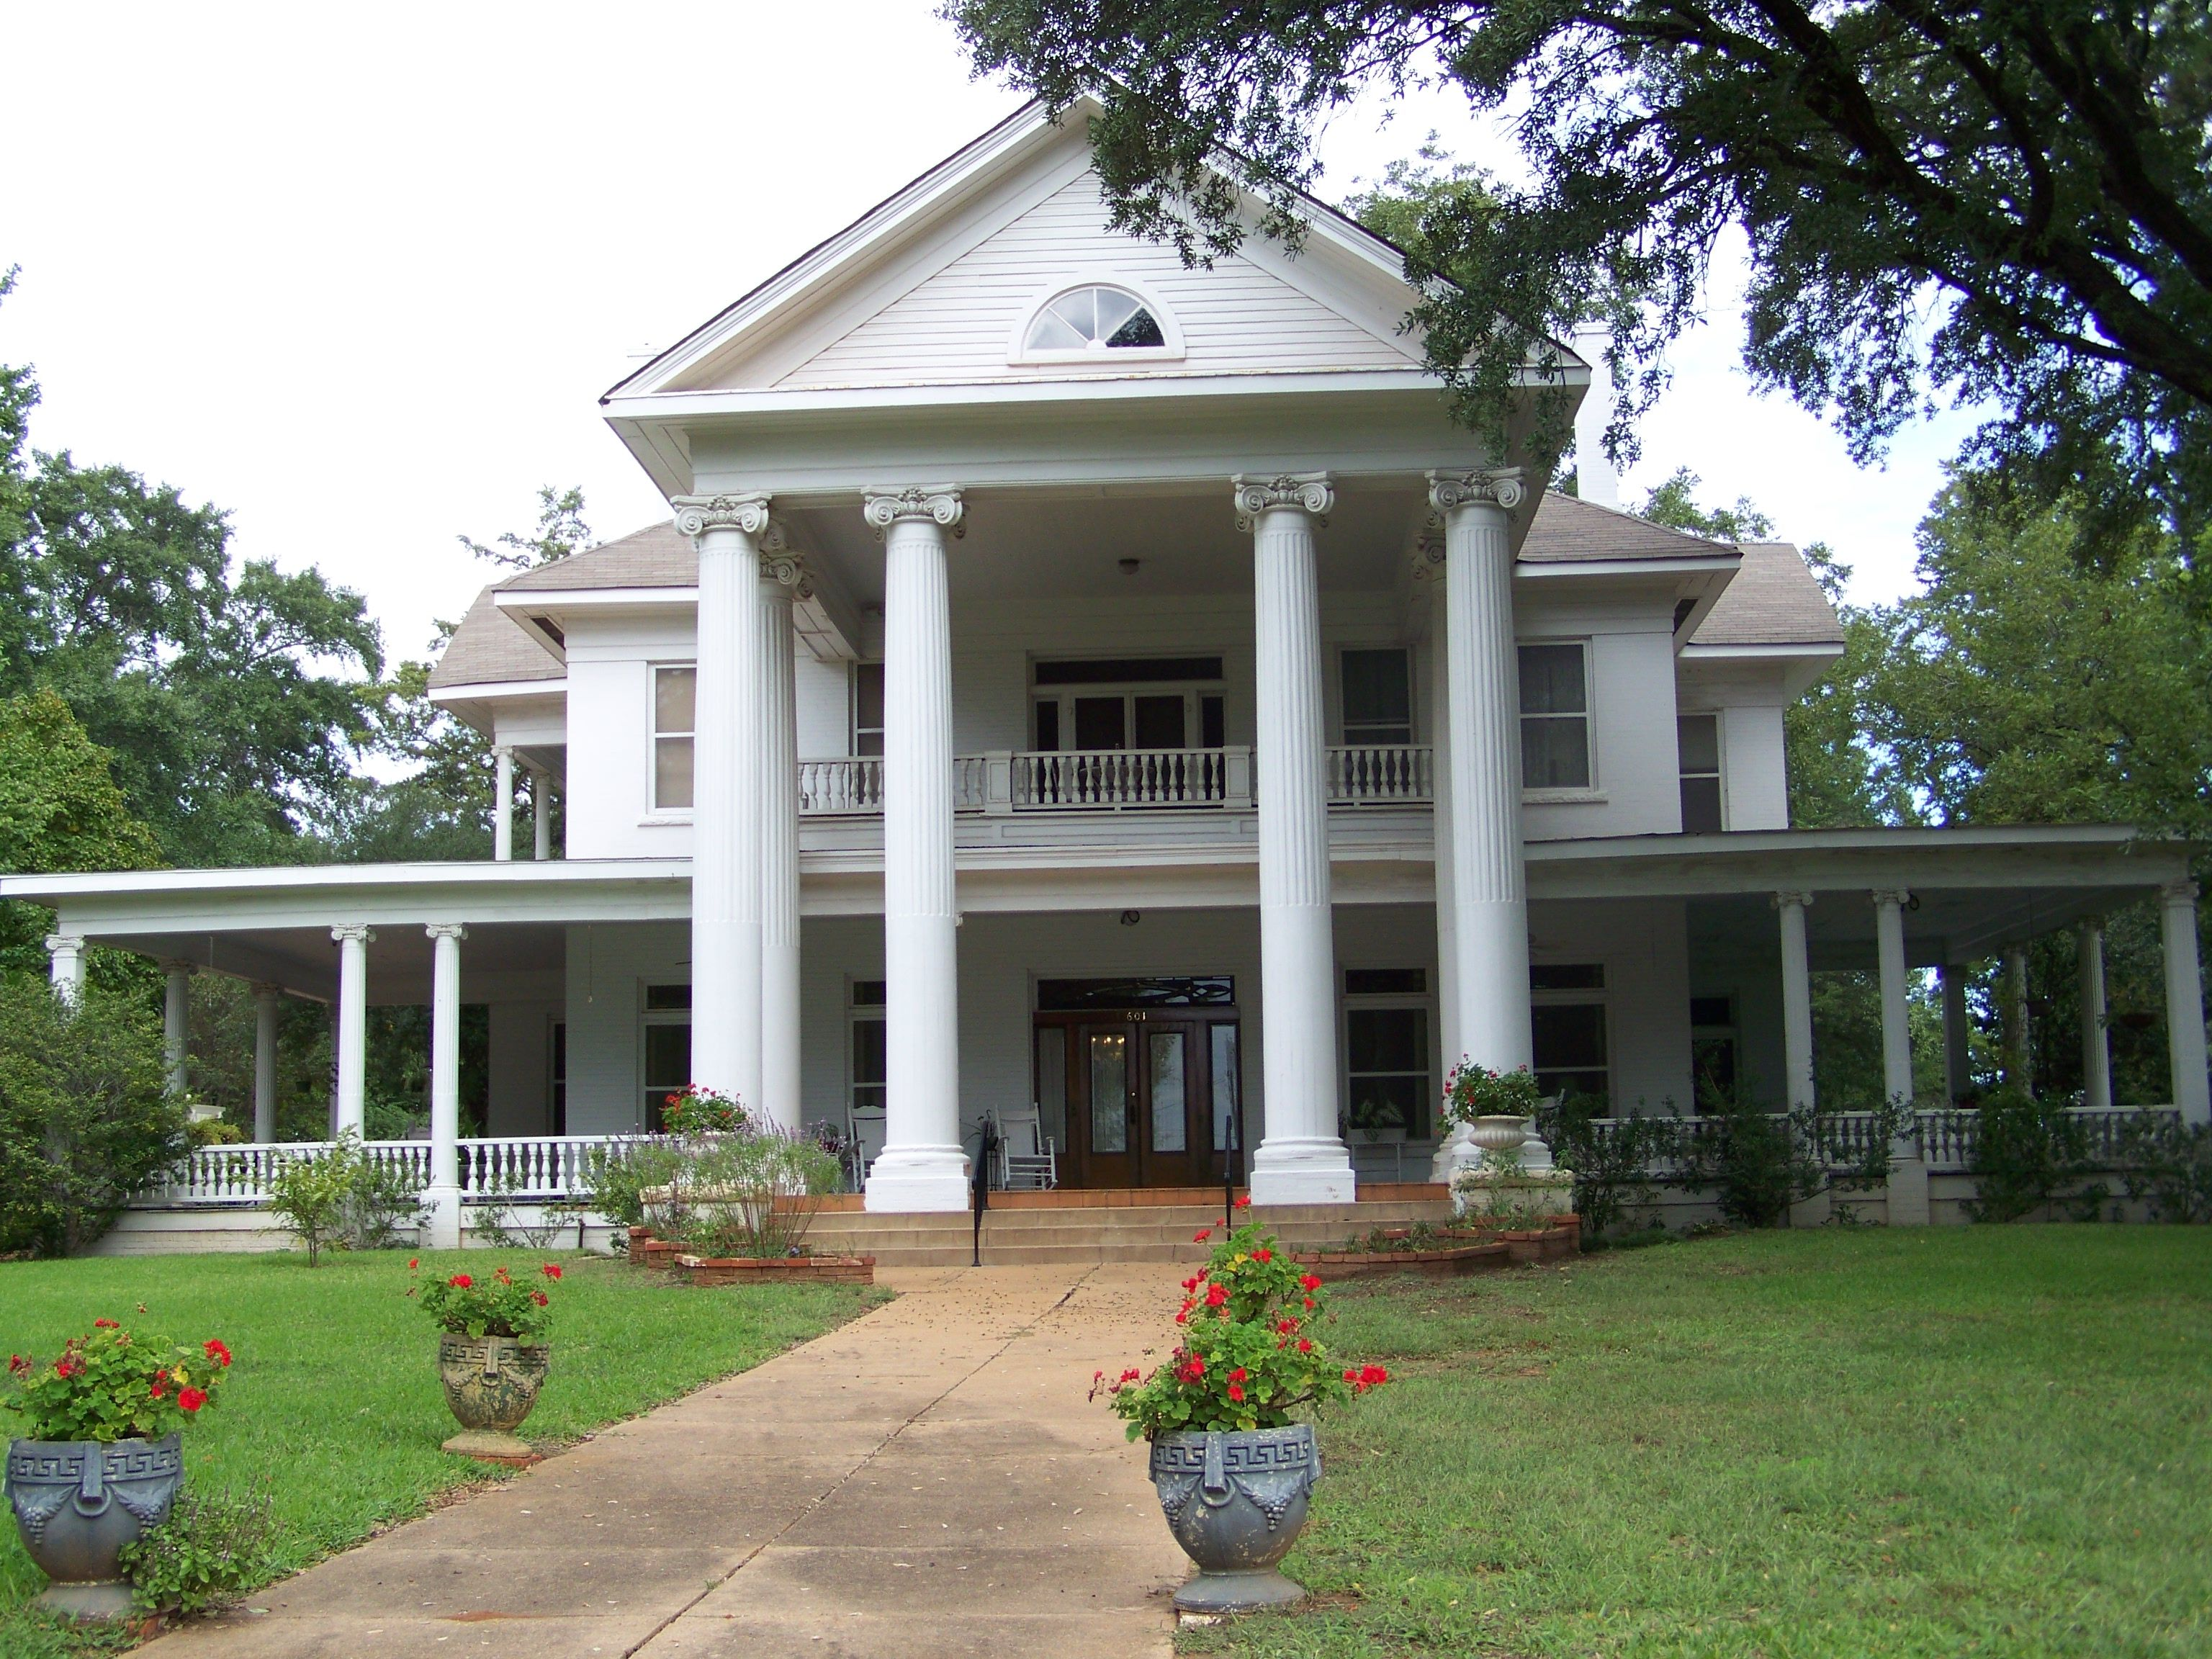 Gorgeous White Greek Revival Mansion With Huge Columns Across The Front And A Wrap Around Porch Located In Palest House With Porch Farmhouse Plans House Plans